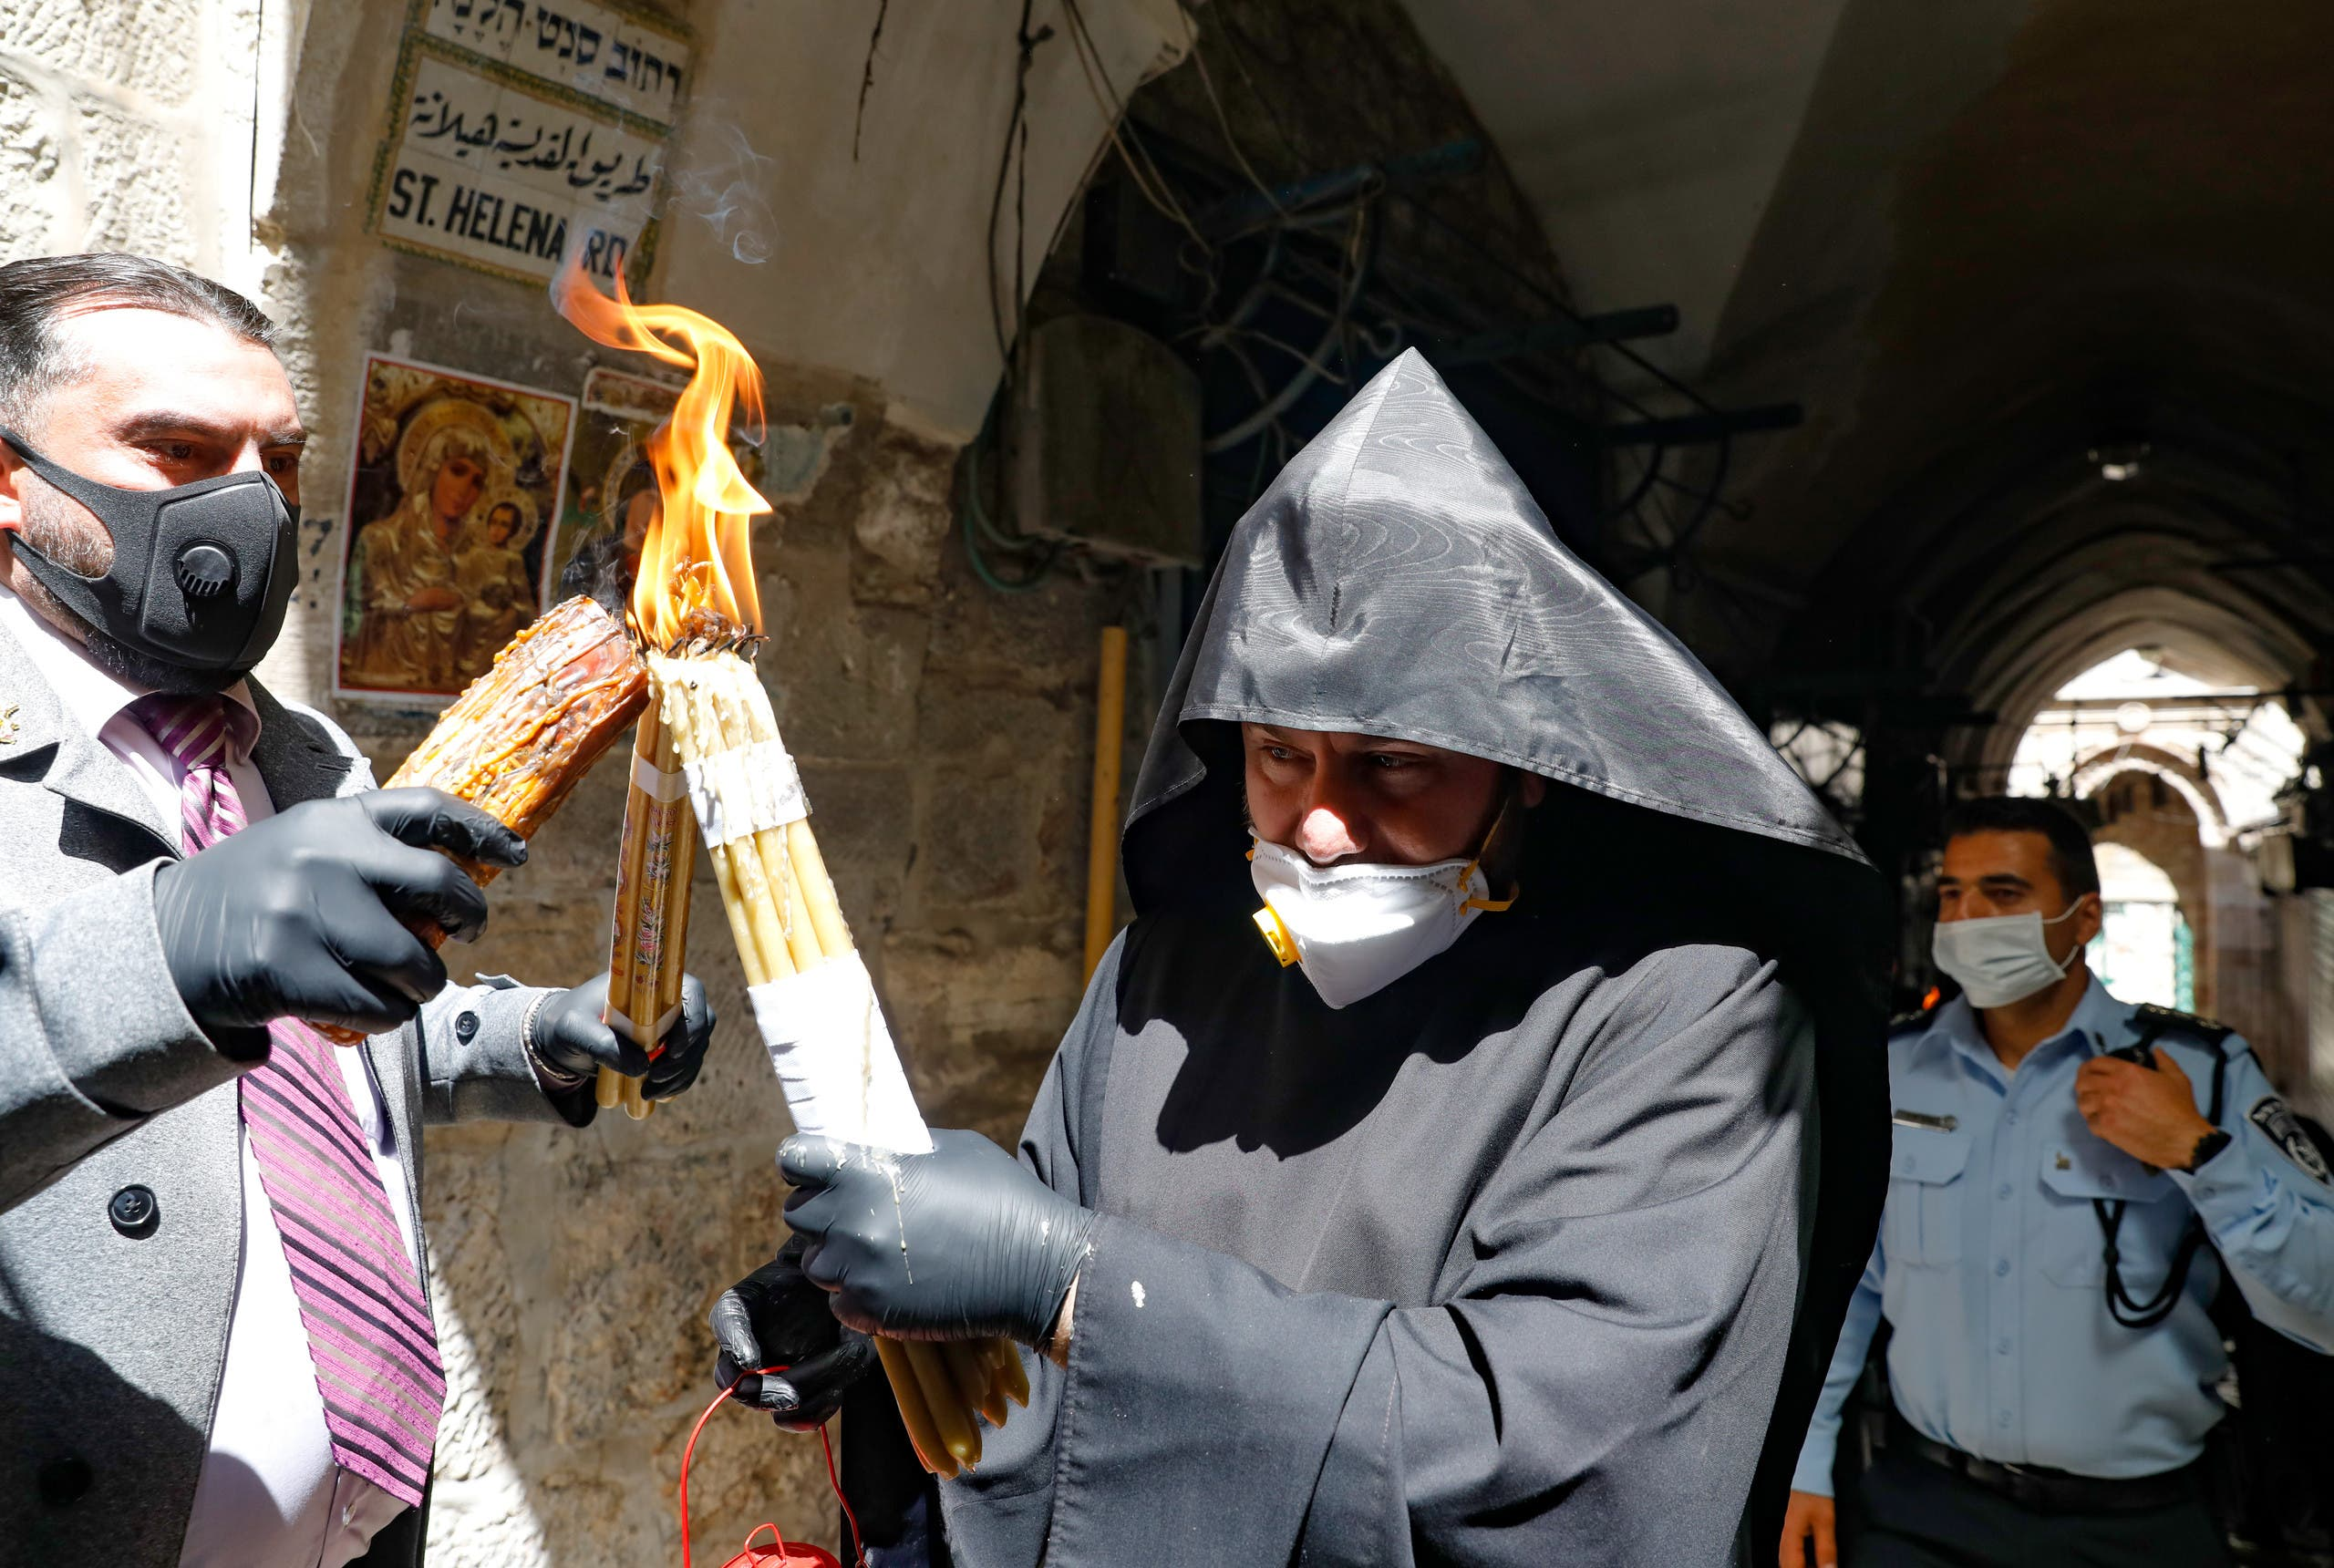 An Armenian priest wearing a protective mask and gloves passes on the Holy Fire lit in the church of the Holy Sepulchre, as very few Orthodox Christians gather in Jerusalem's Old City to celebrate Easter due to the lockdown imposed by authorities in a bid to limit the spread of the novel coronavirus, on April 18, 2020. (AFP)